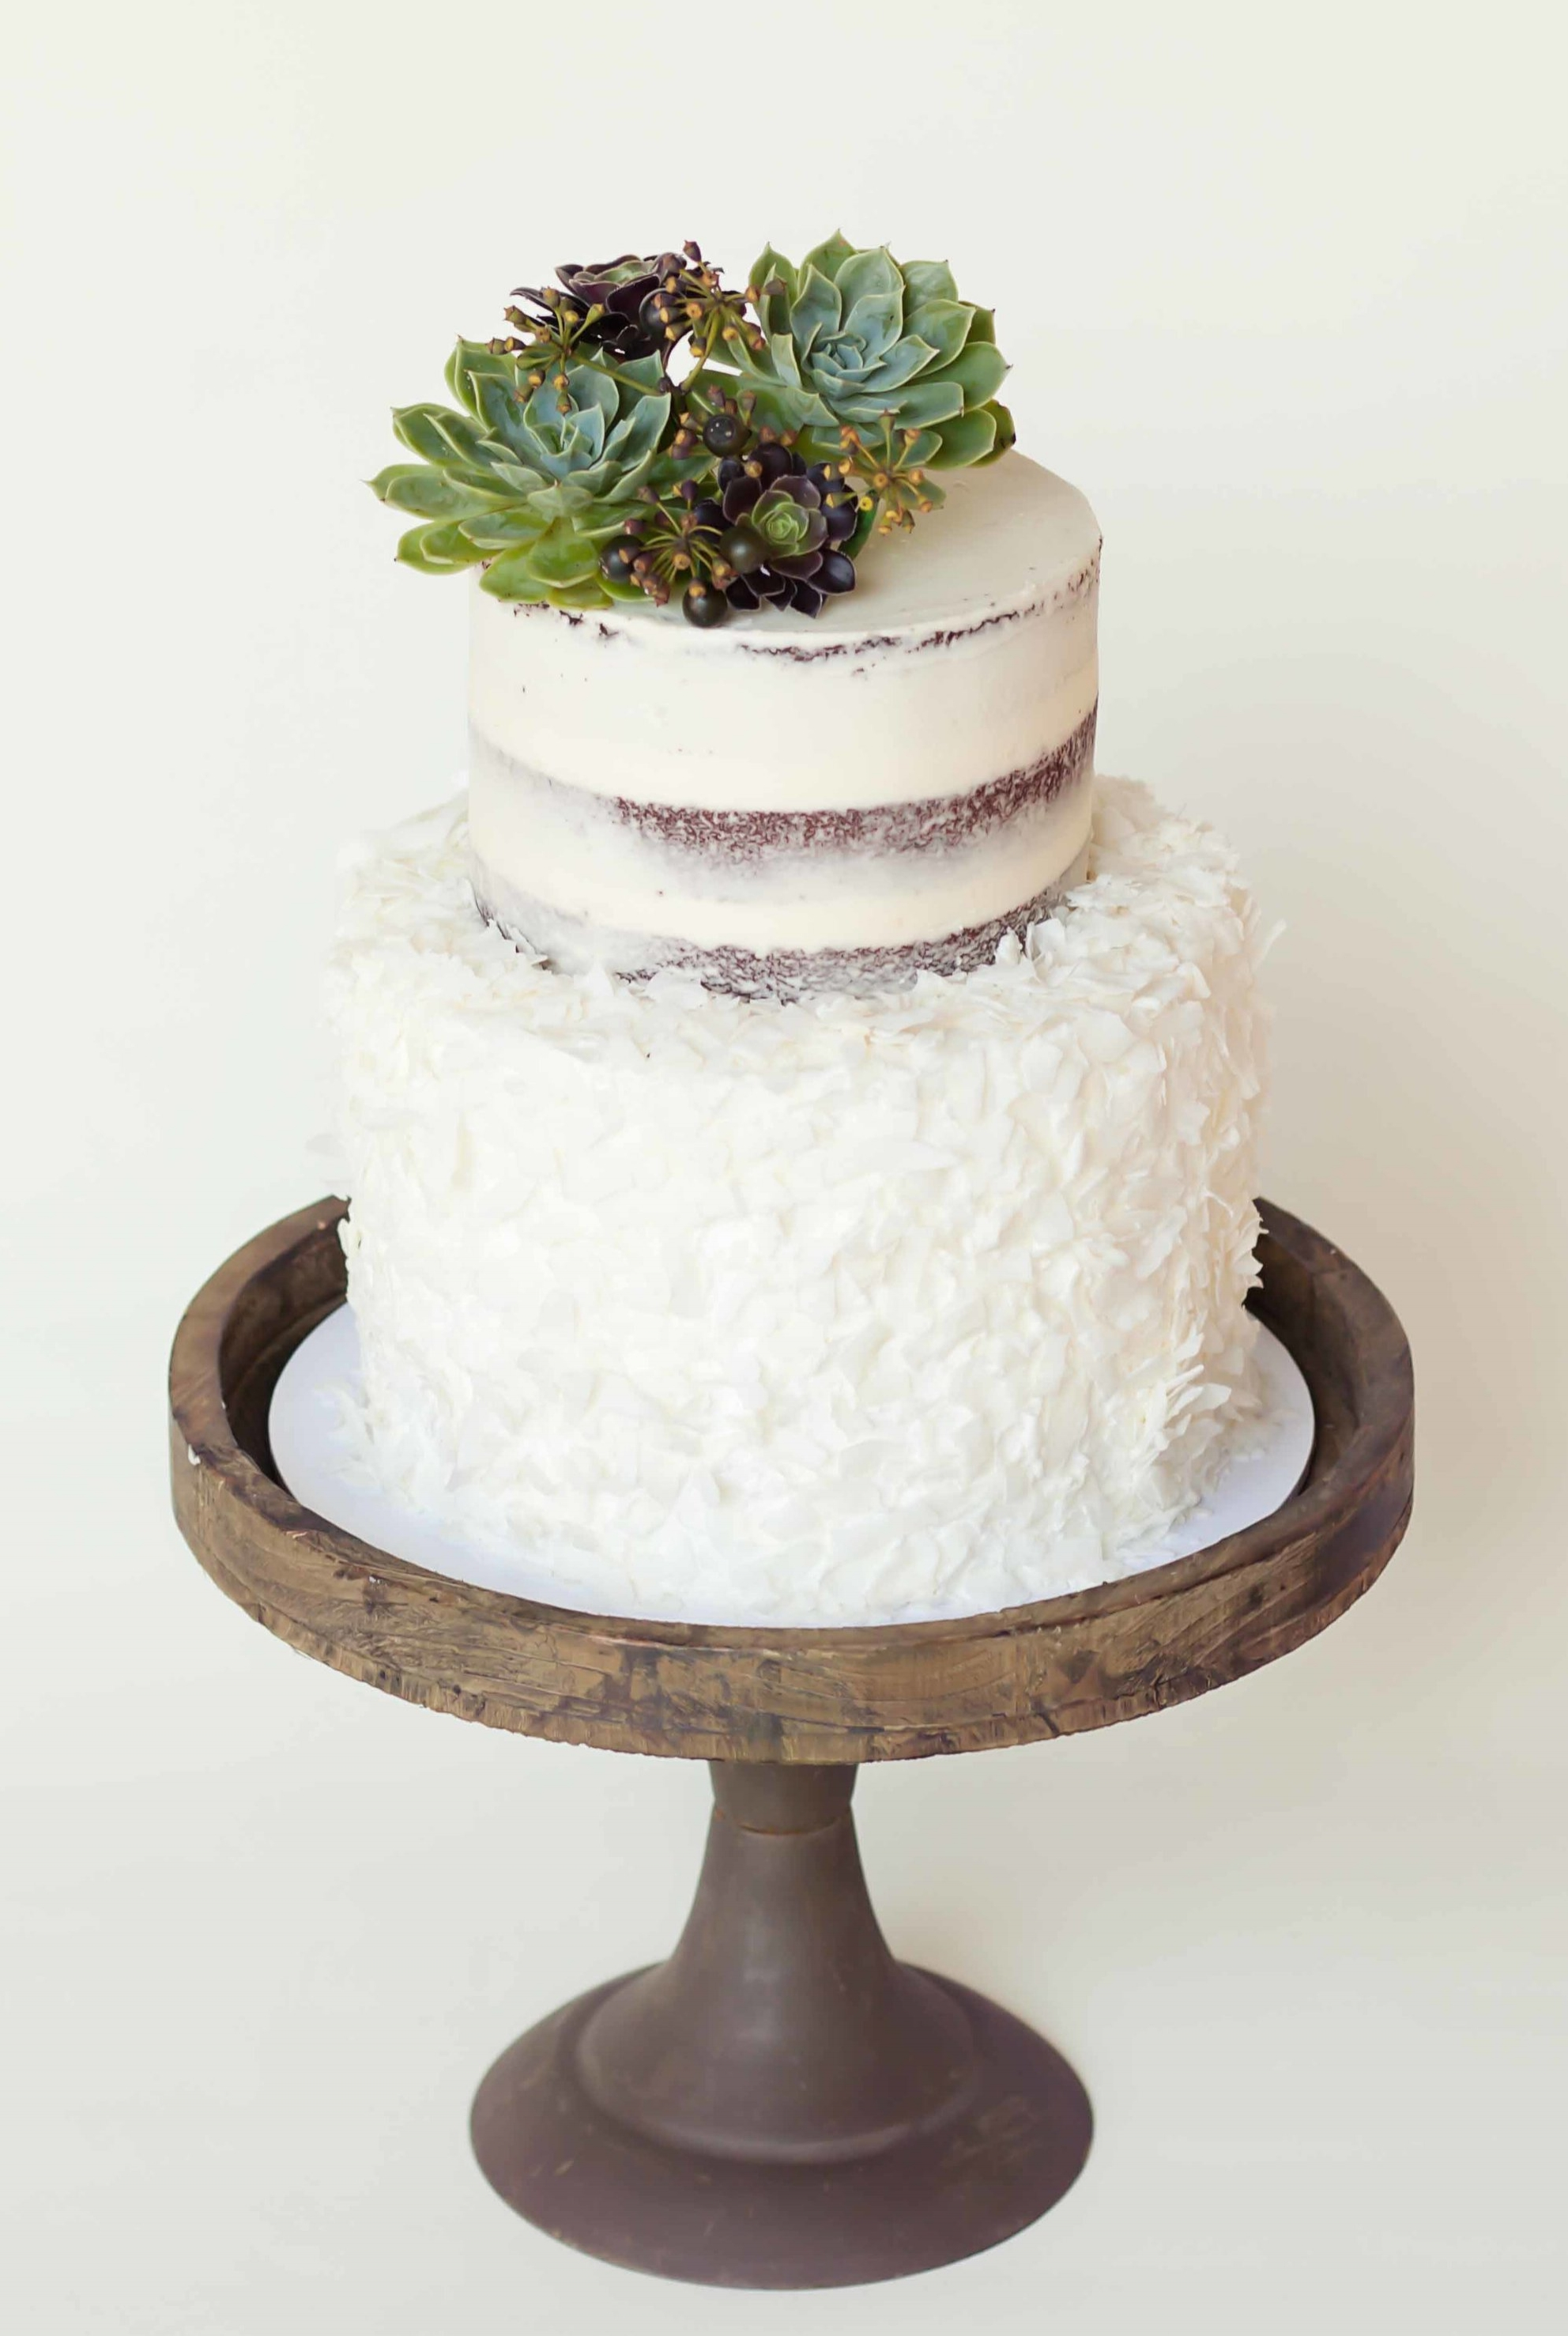 Coconut semi naked cake with flowers.jpg